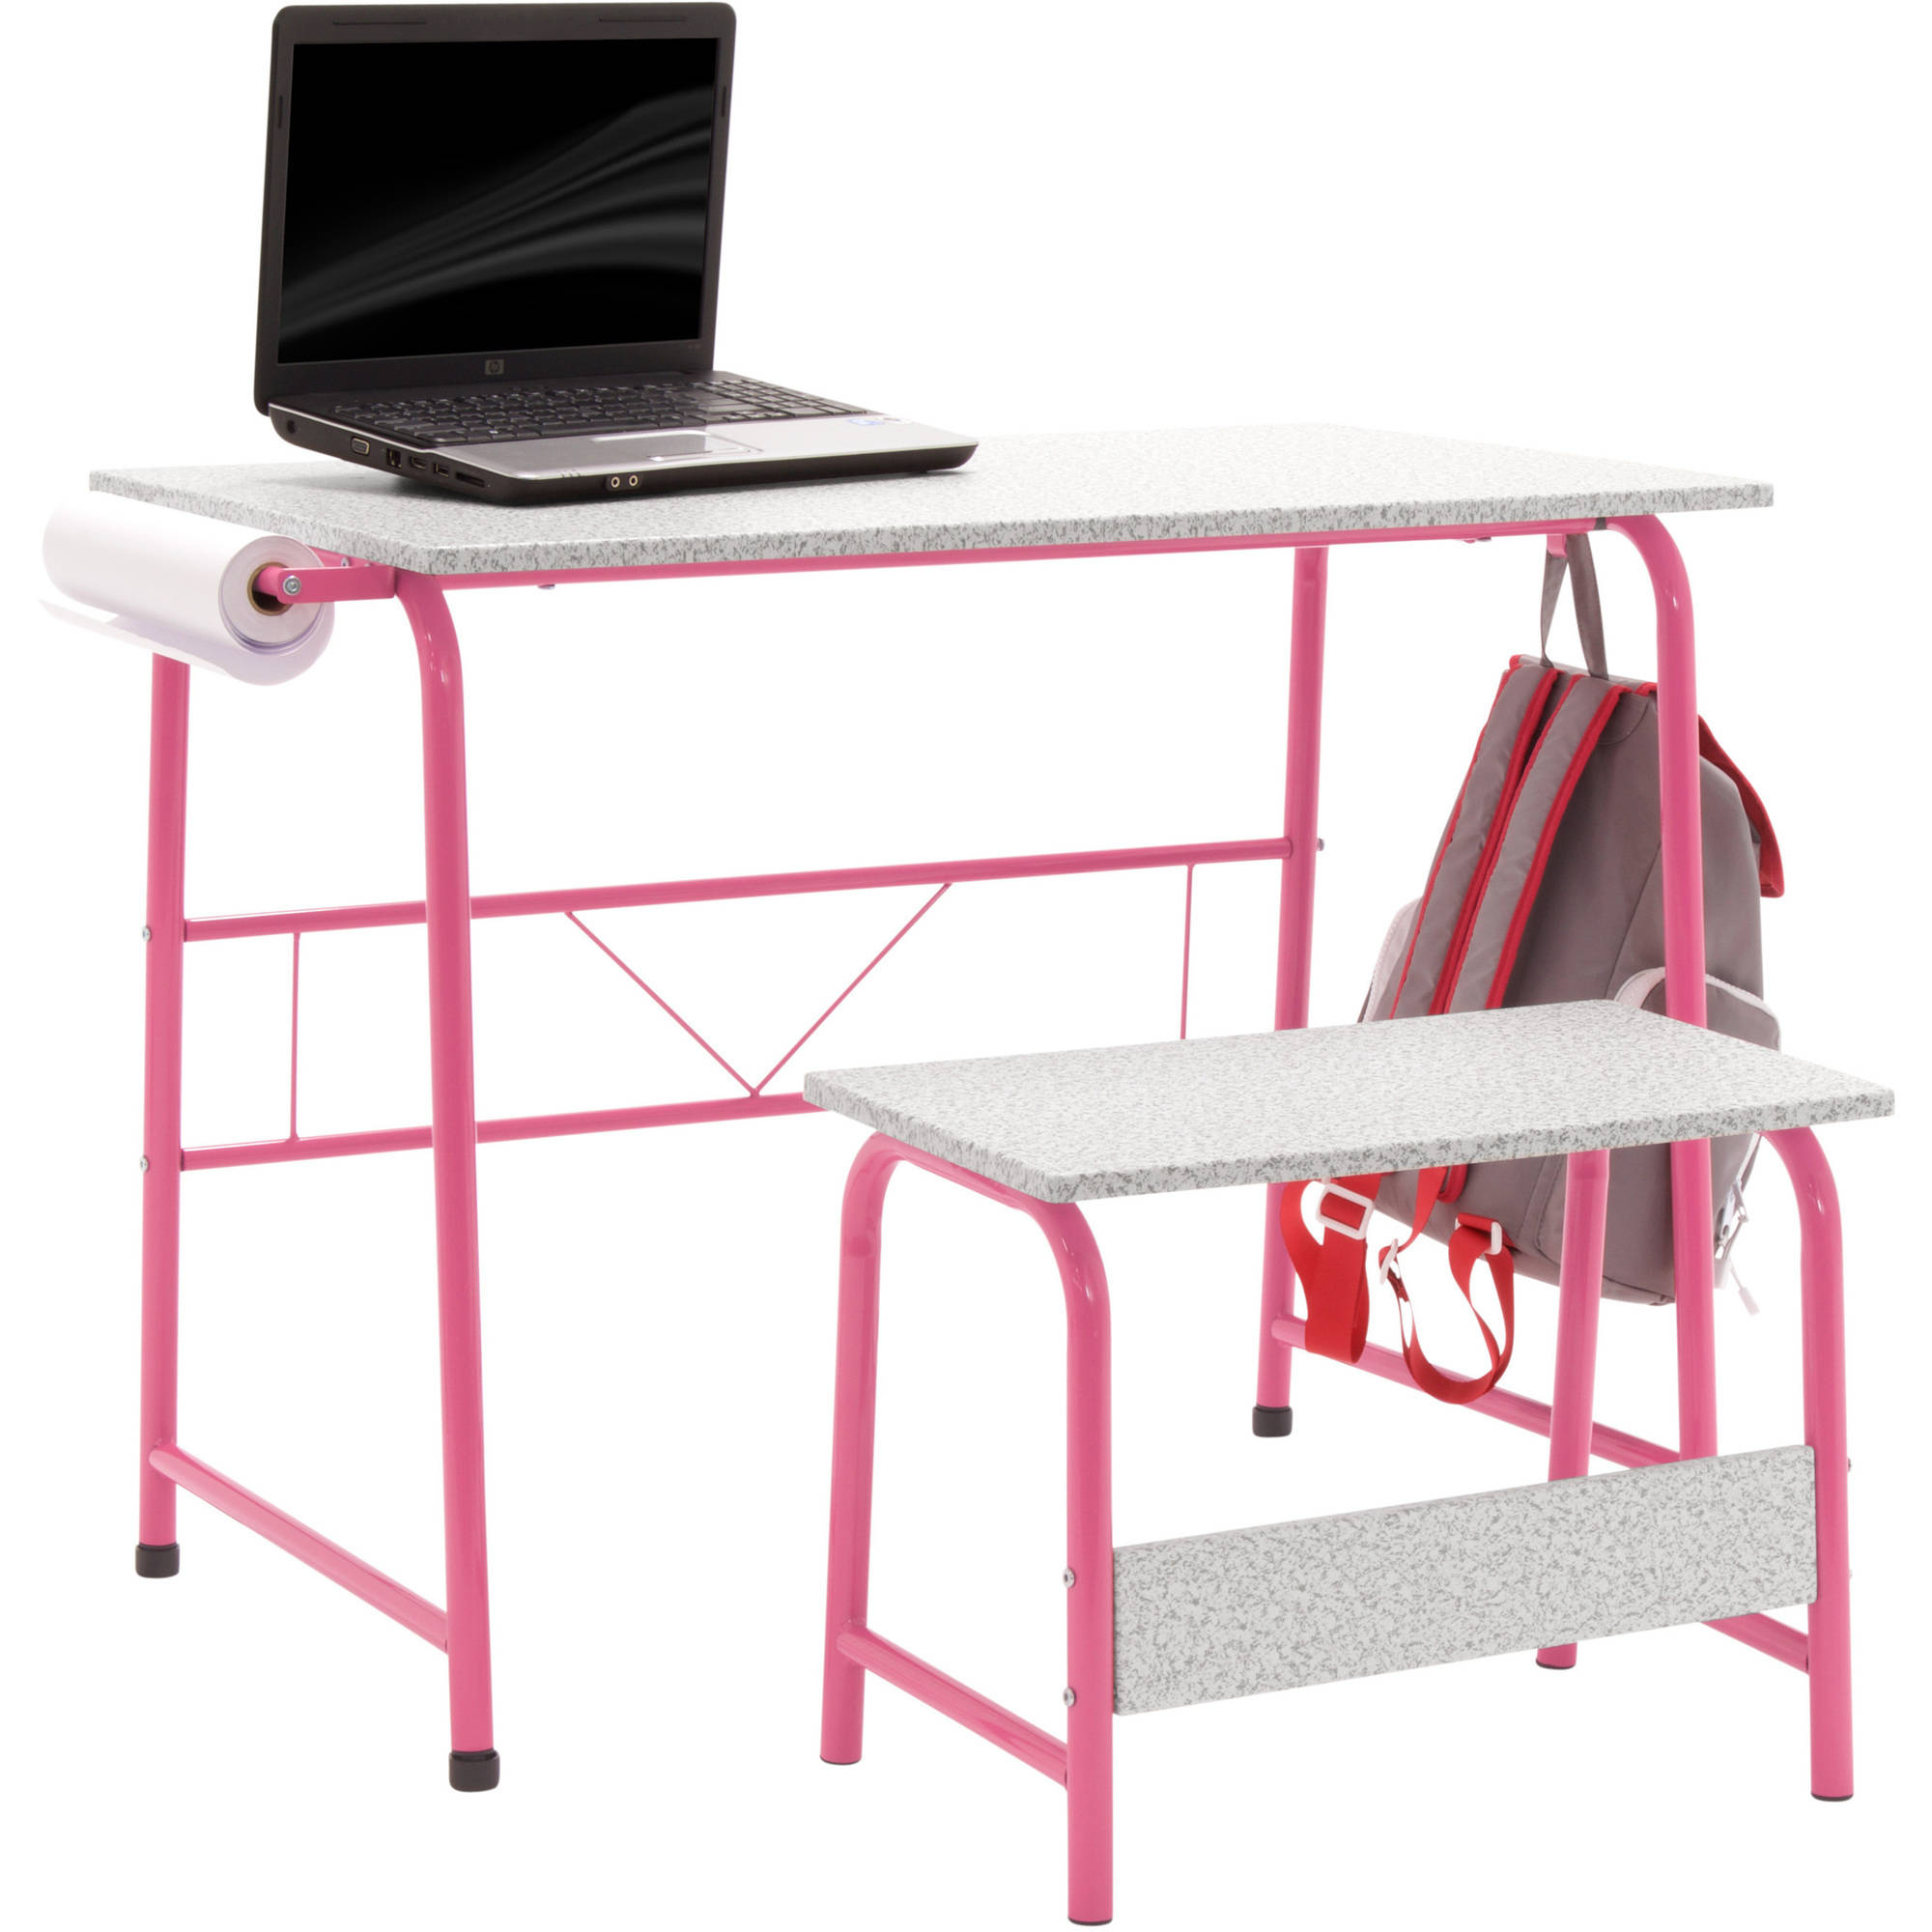 studio designs project center art table - Drafting Tables